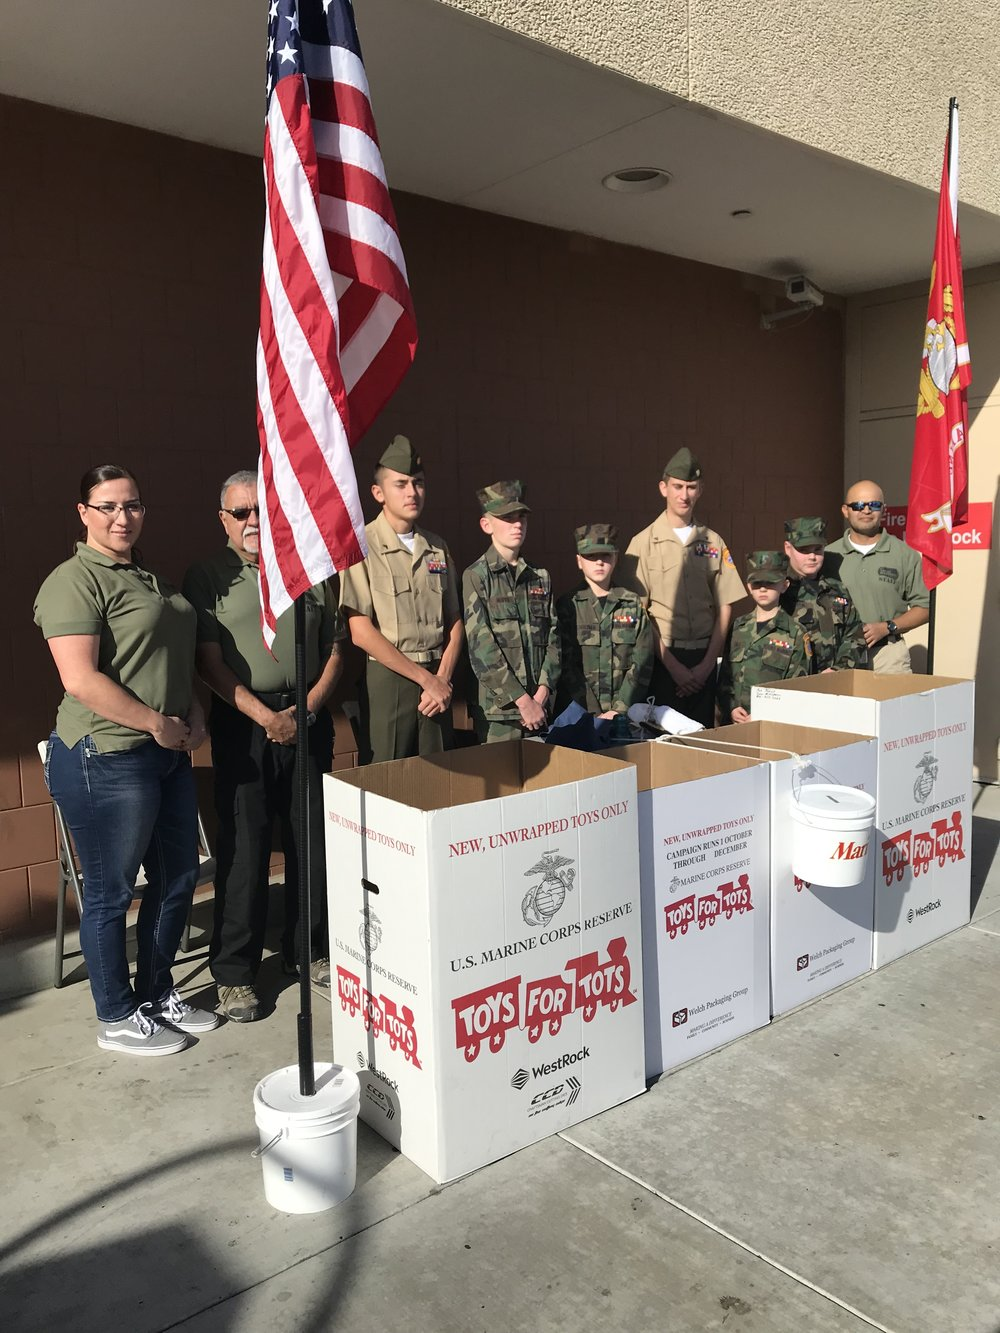 The Young Marines from Santa Clarita man the Toys for Tots collection area on Sunday, December 23 at the Target Store in Simi Valley.